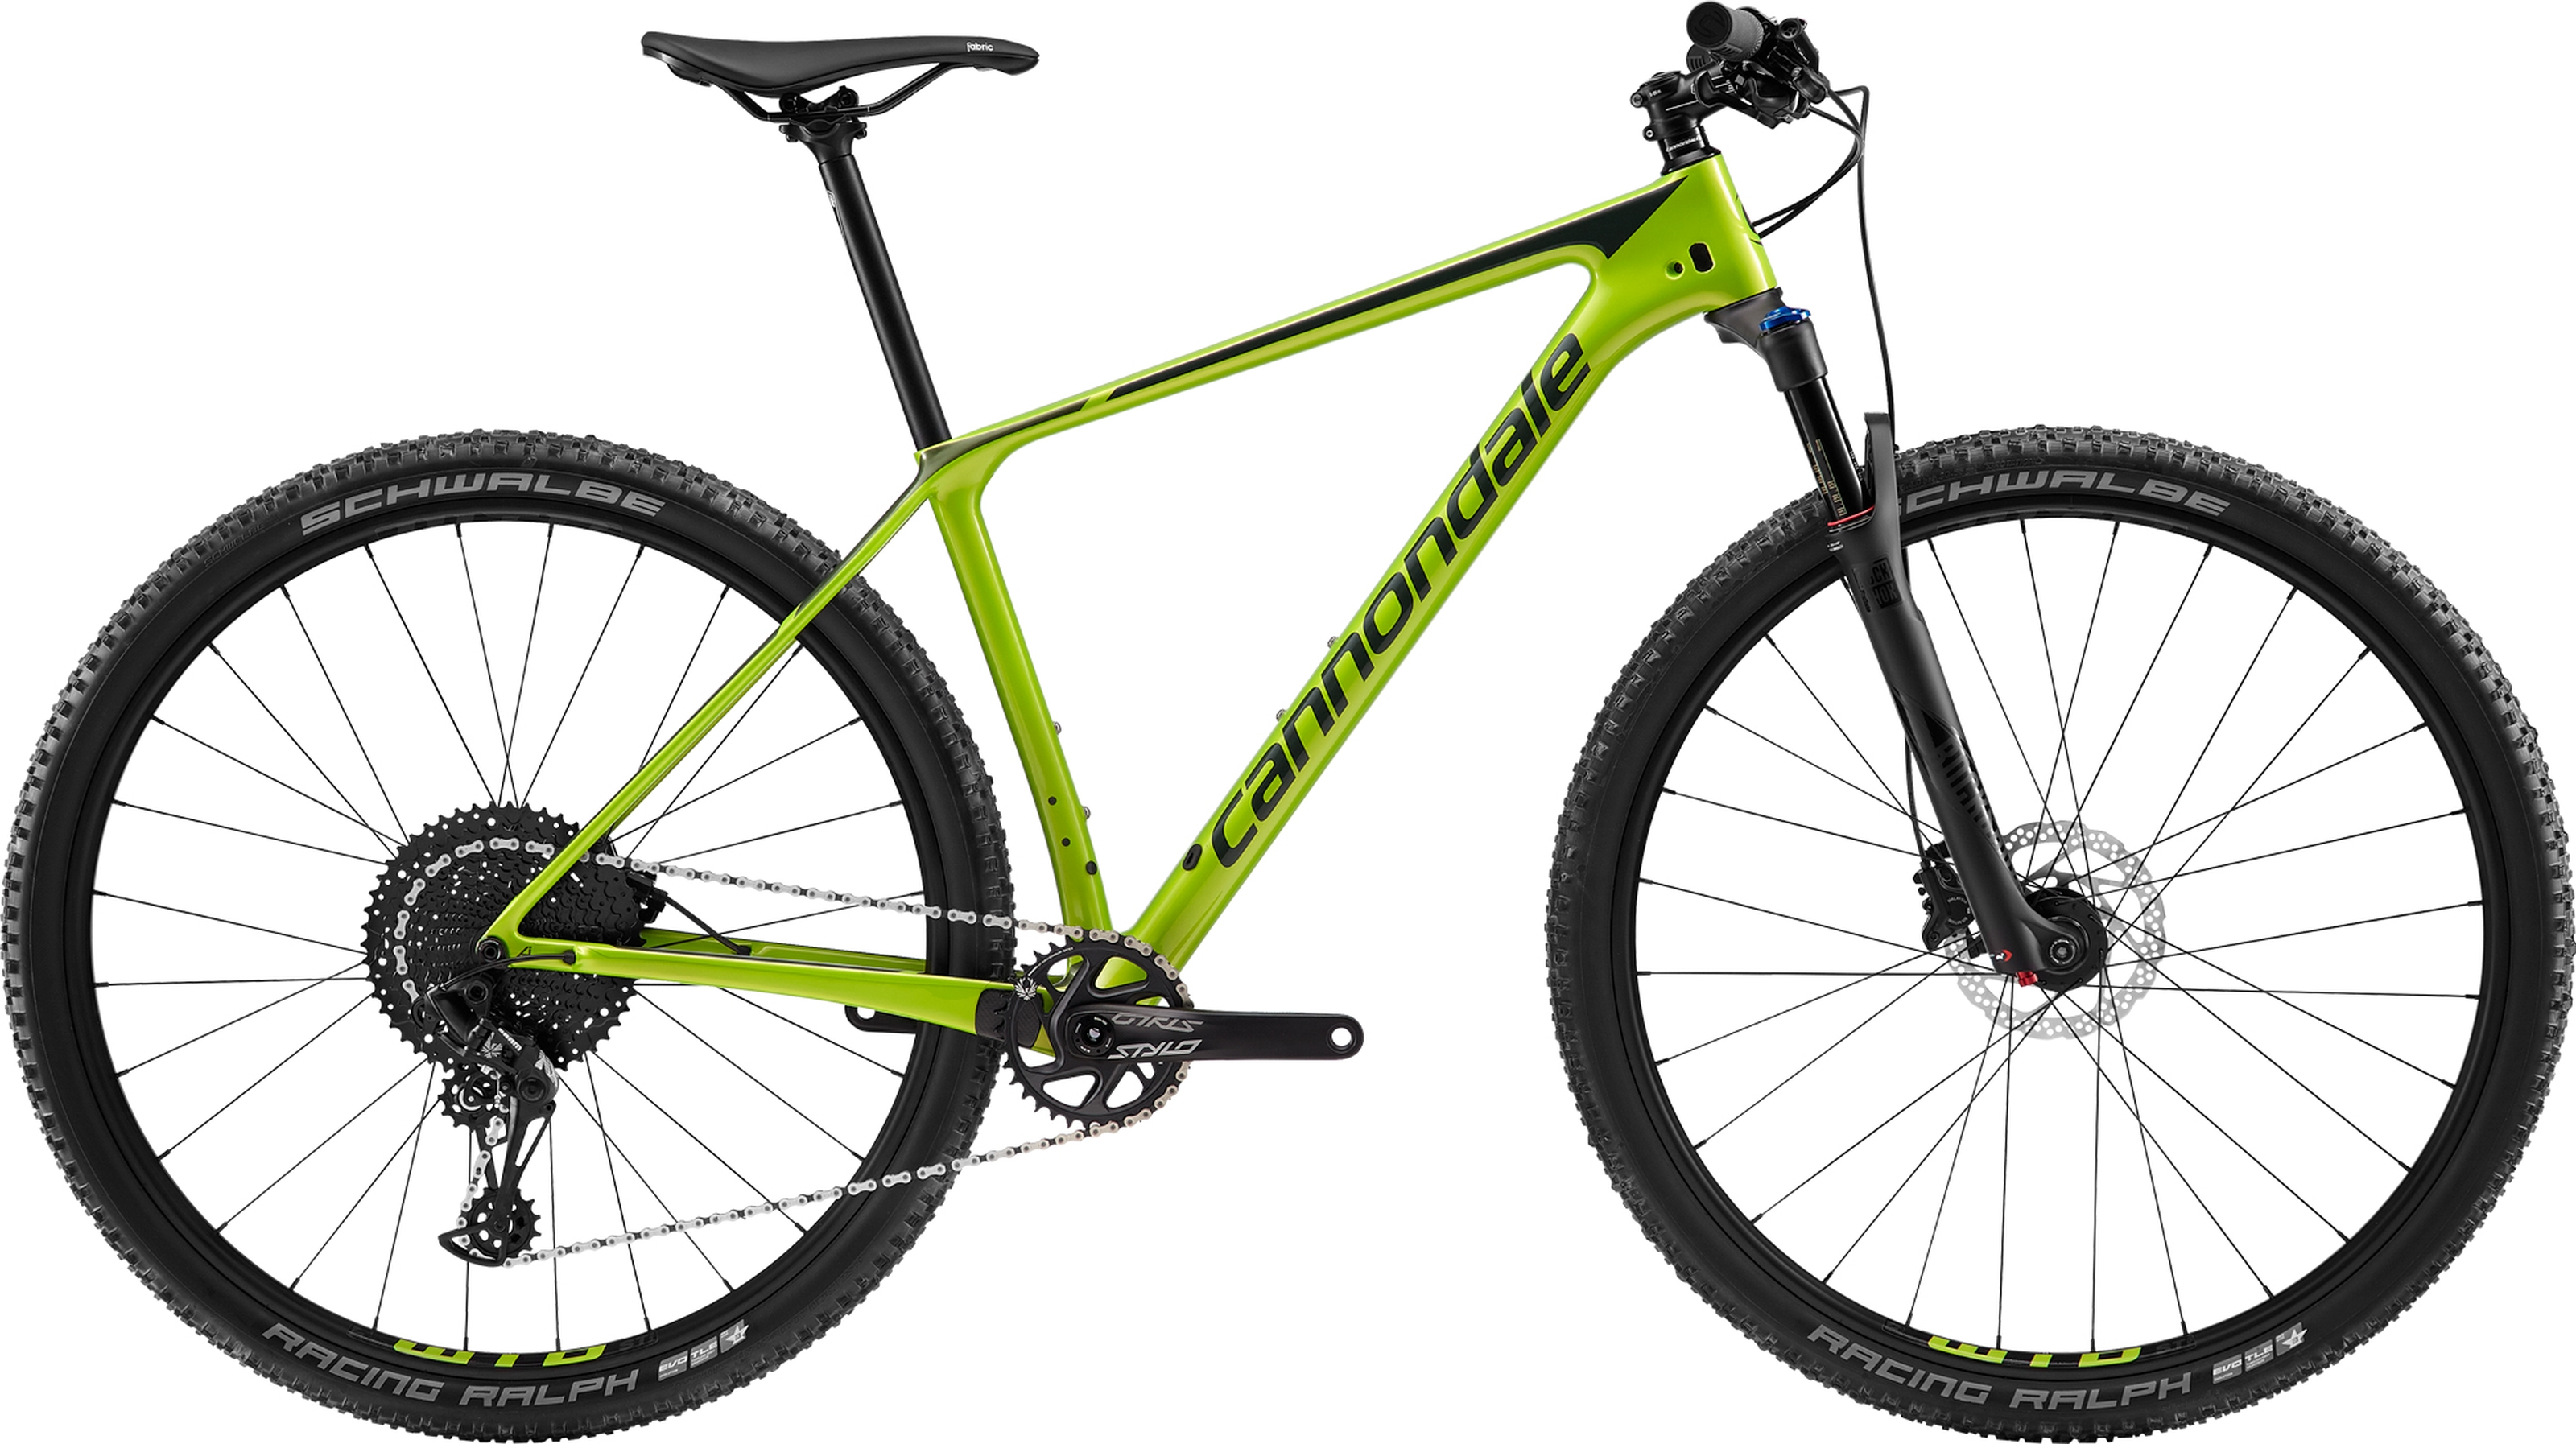 2019 Cannondale F-Si 5 Mens Carbon Hardtail Mountain Bike in Green | Mountainbikes